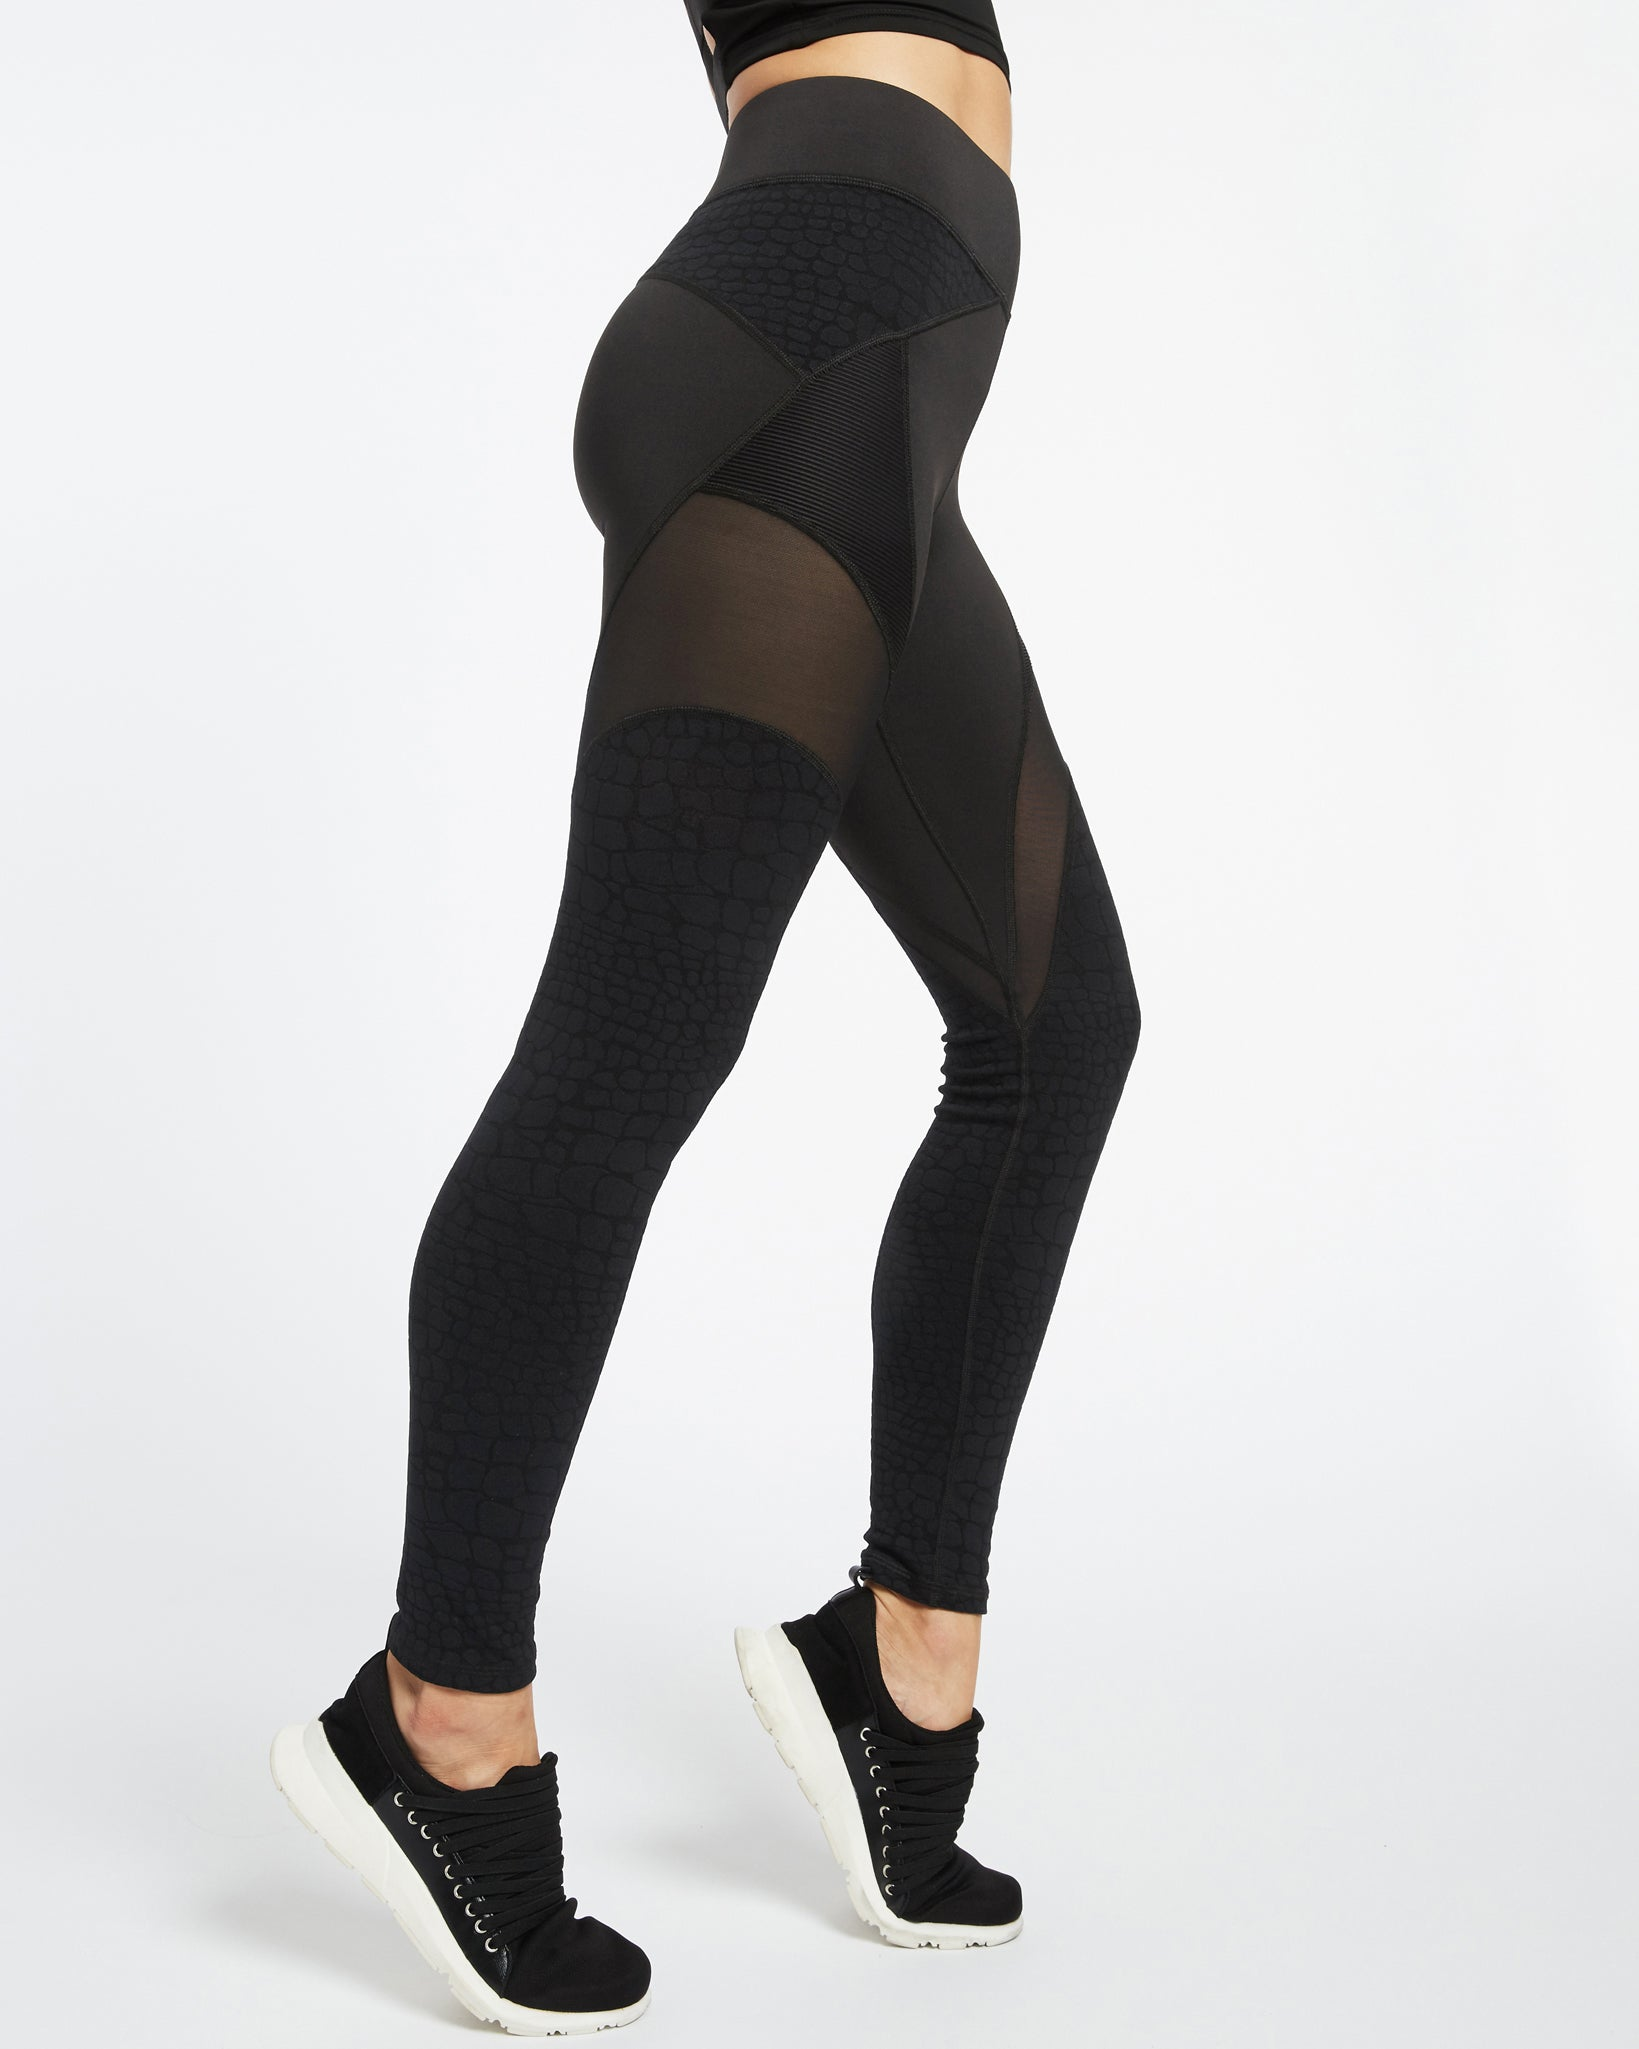 mirage-legging-black-croc-black